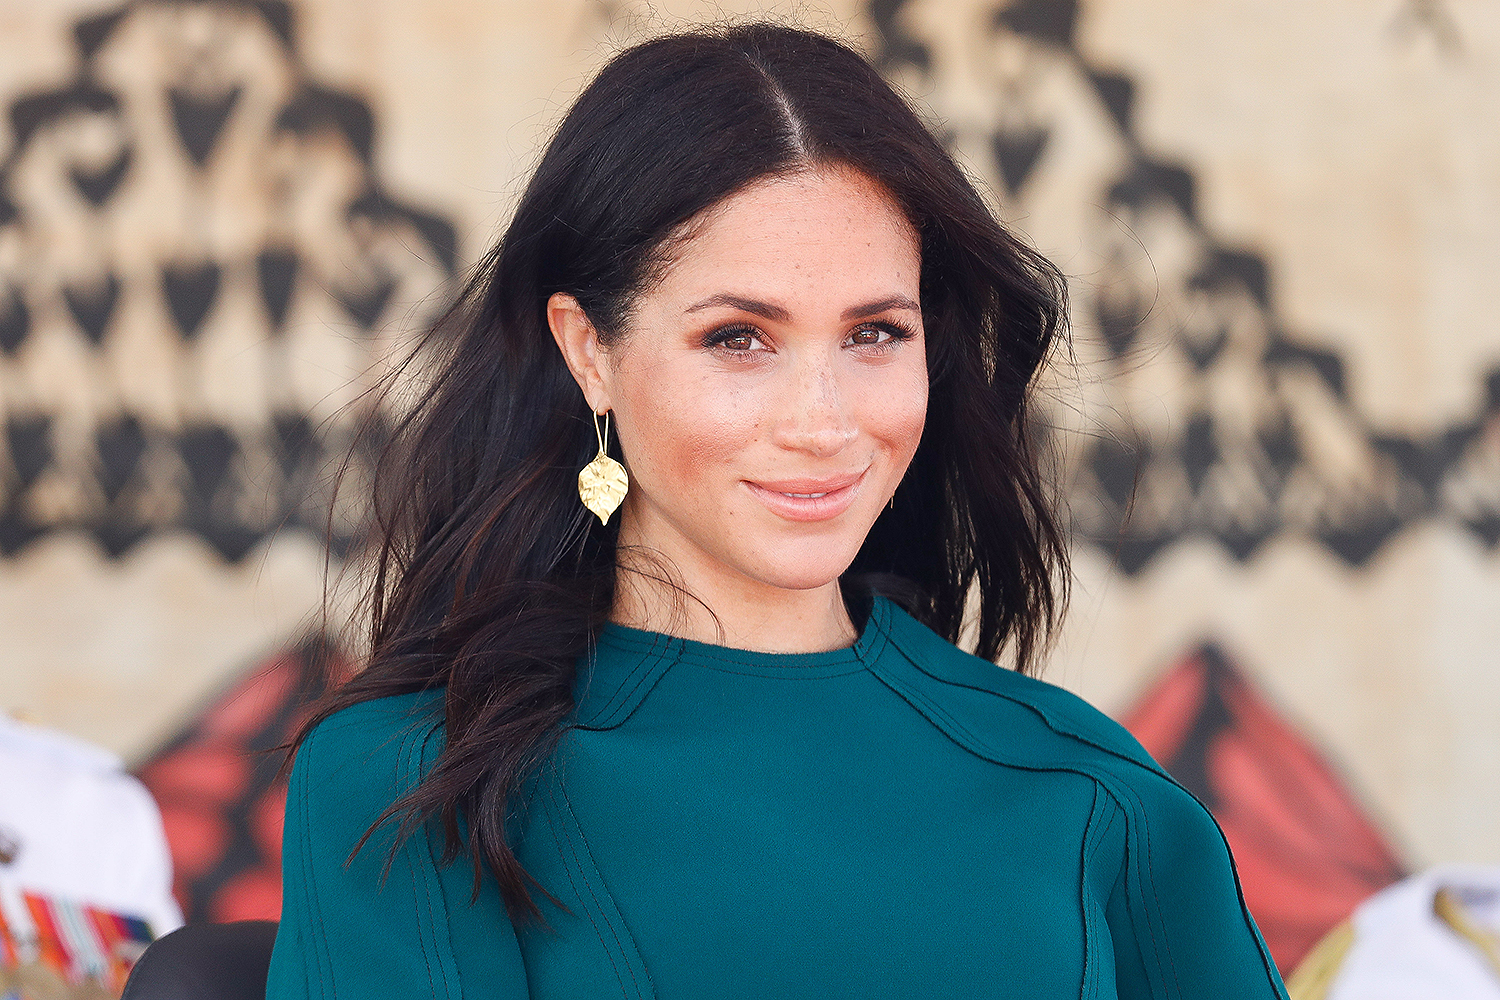 megan-markle-sharon-osbourne-and-more-open-up-on-world-mental-health-day